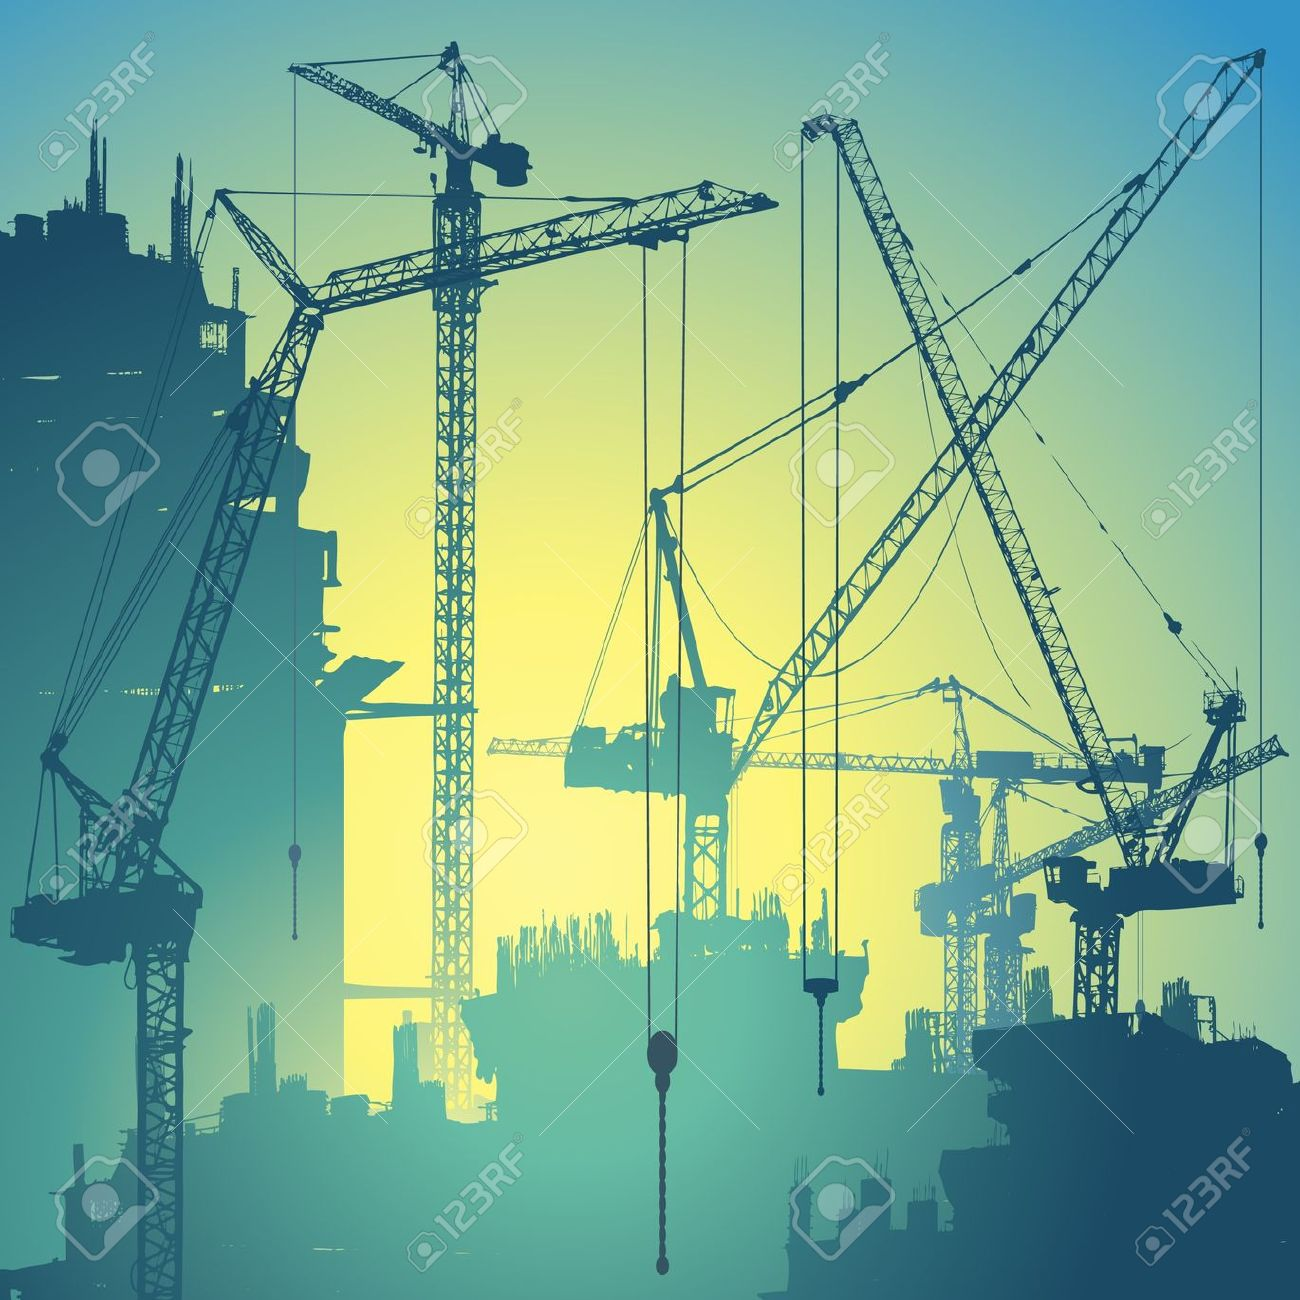 Construction clipart background.